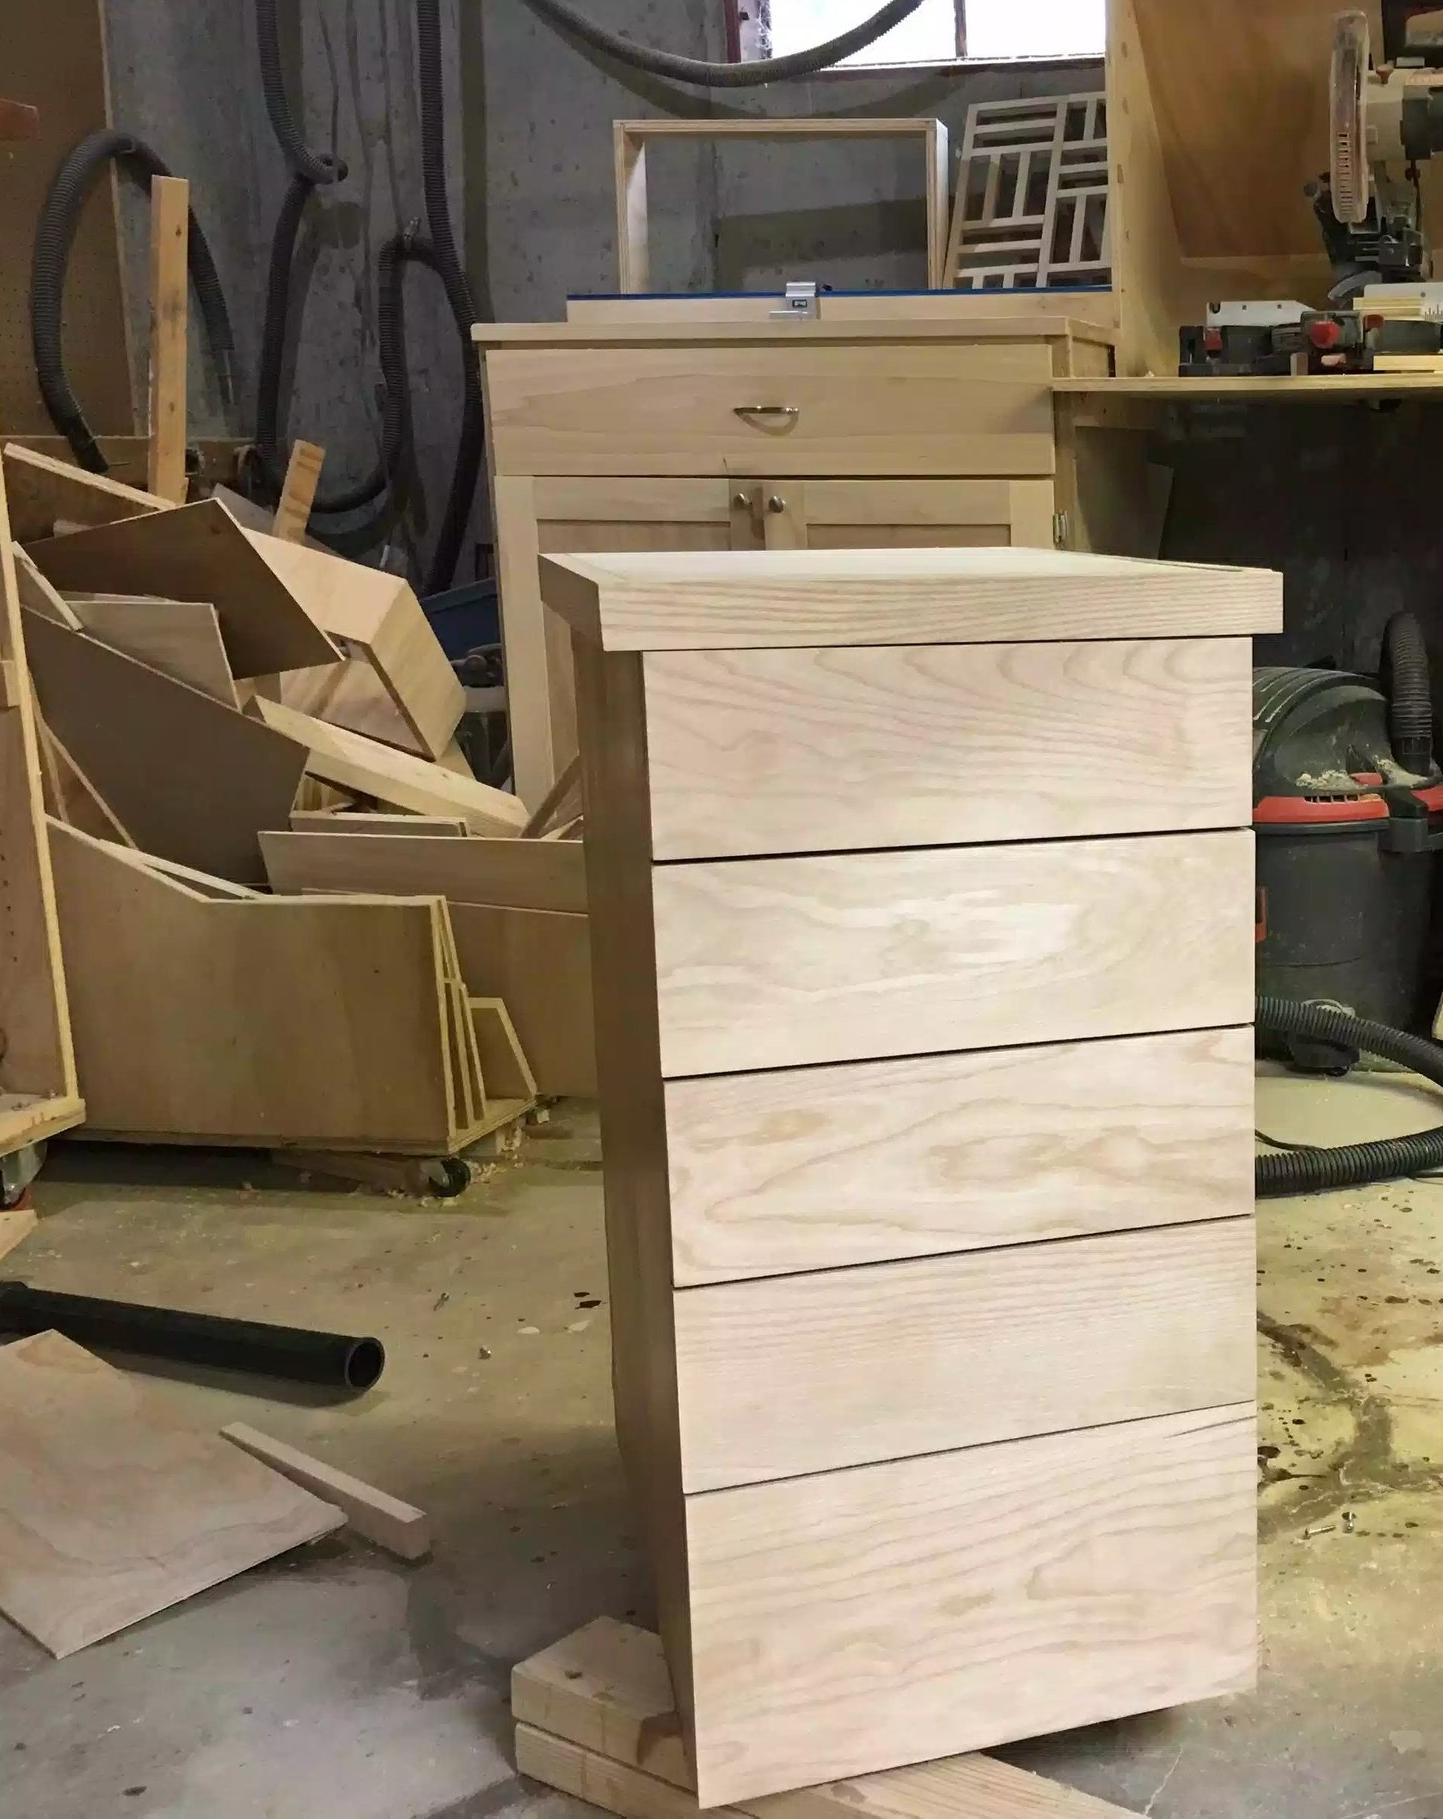 Here you can see the front of my cabinet, I love how the grain runs from top to bottom on the false fronts.